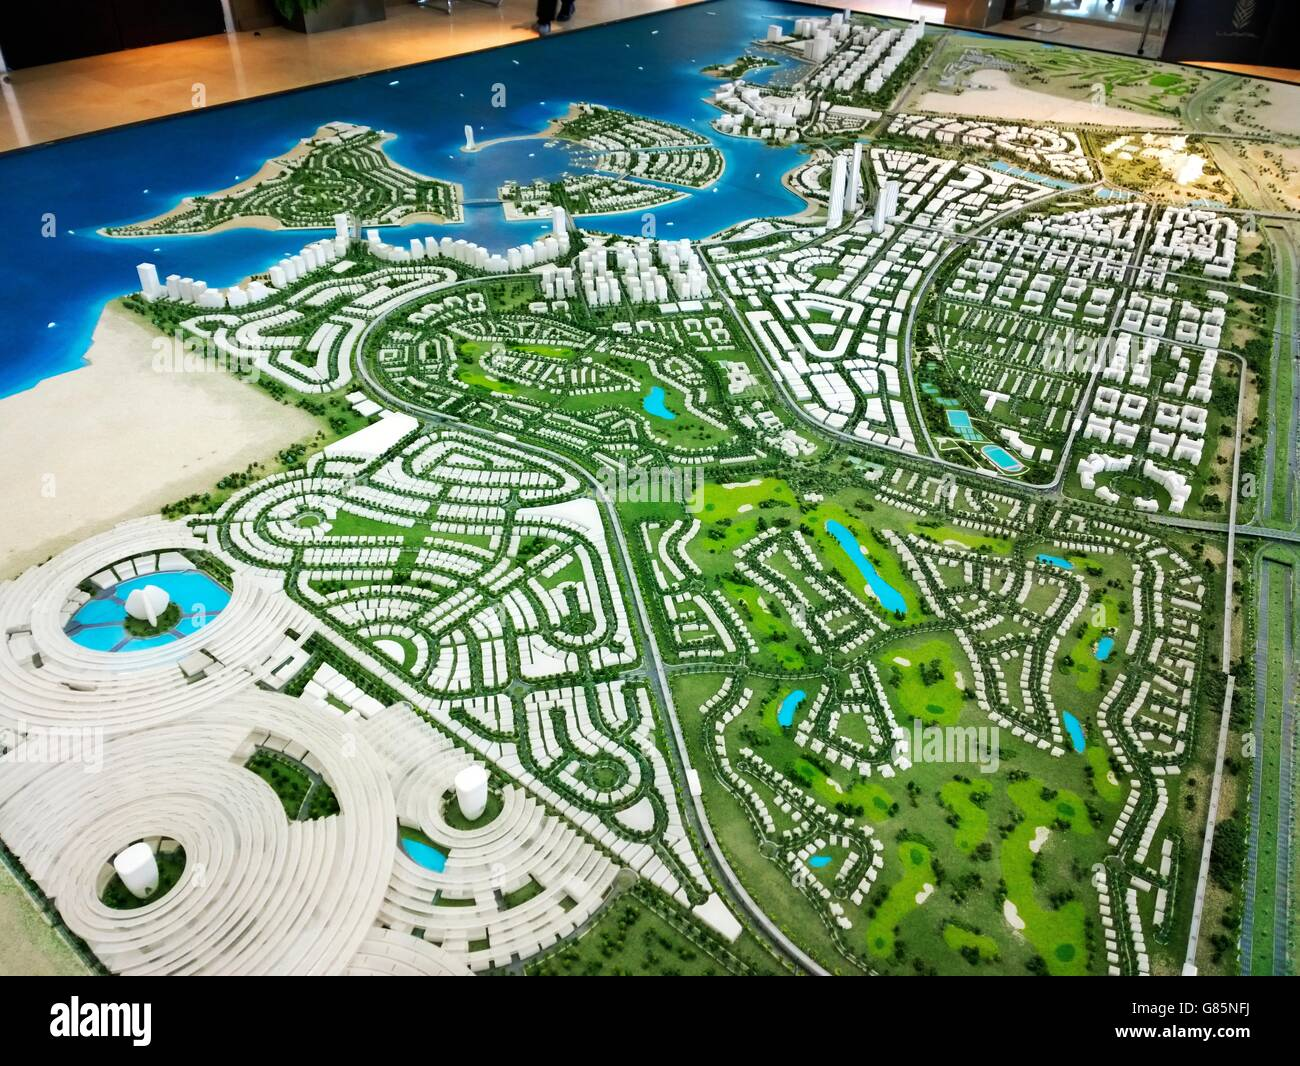 Master plan scale model birds-eye aerial overview of the developing new marina city of Lusail, Qatar - Stock Image